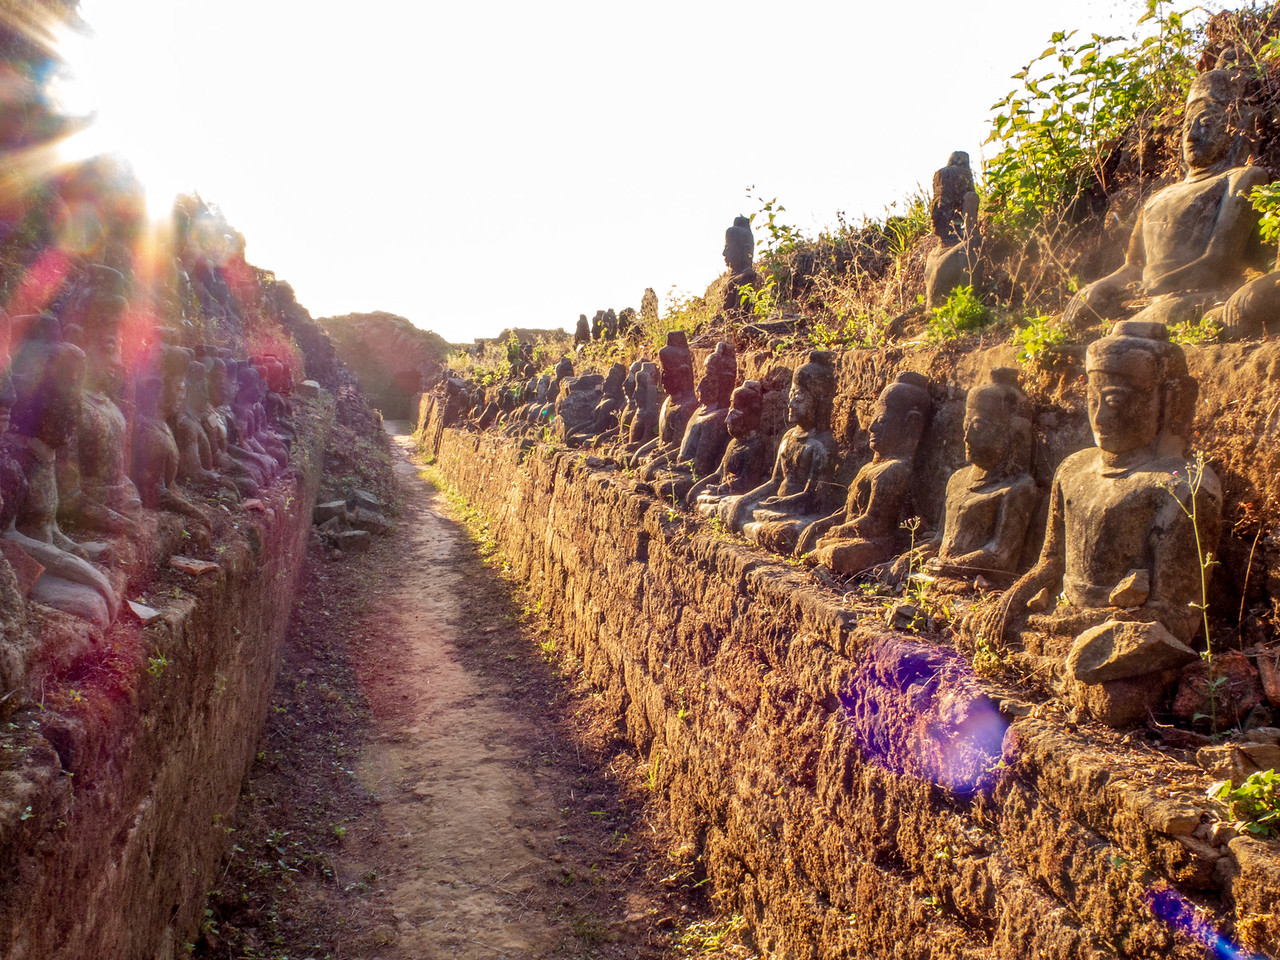 Buddhas in the Sunshine at Kothaung Paya Temple in Mrauk OO